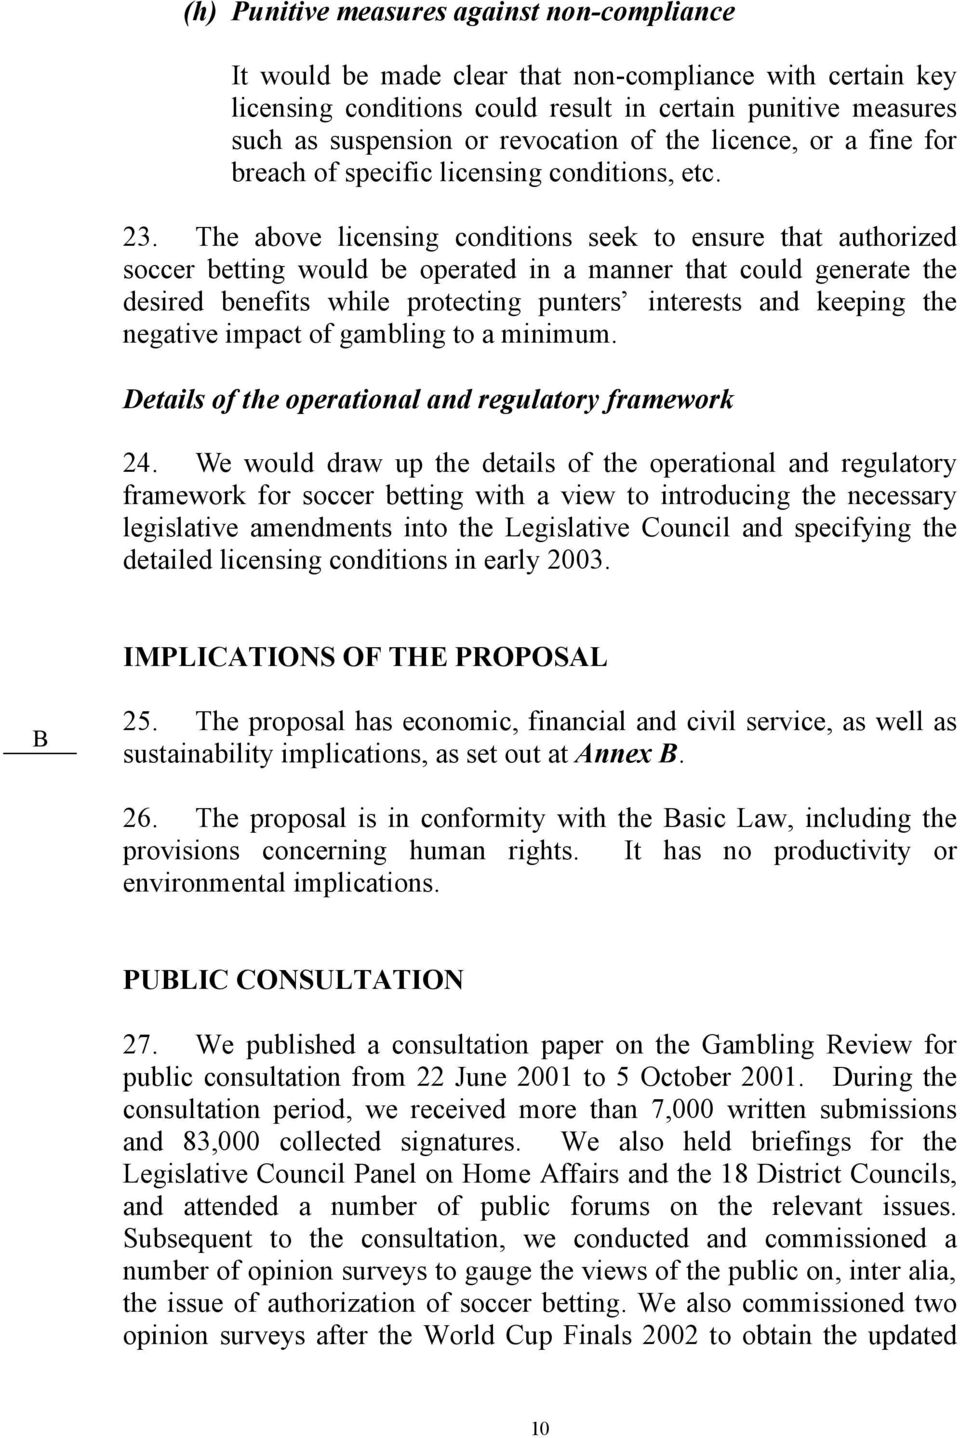 The above licensing conditions seek to ensure that authorized soccer betting would be operated in a manner that could generate the desired benefits while protecting punters interests and keeping the